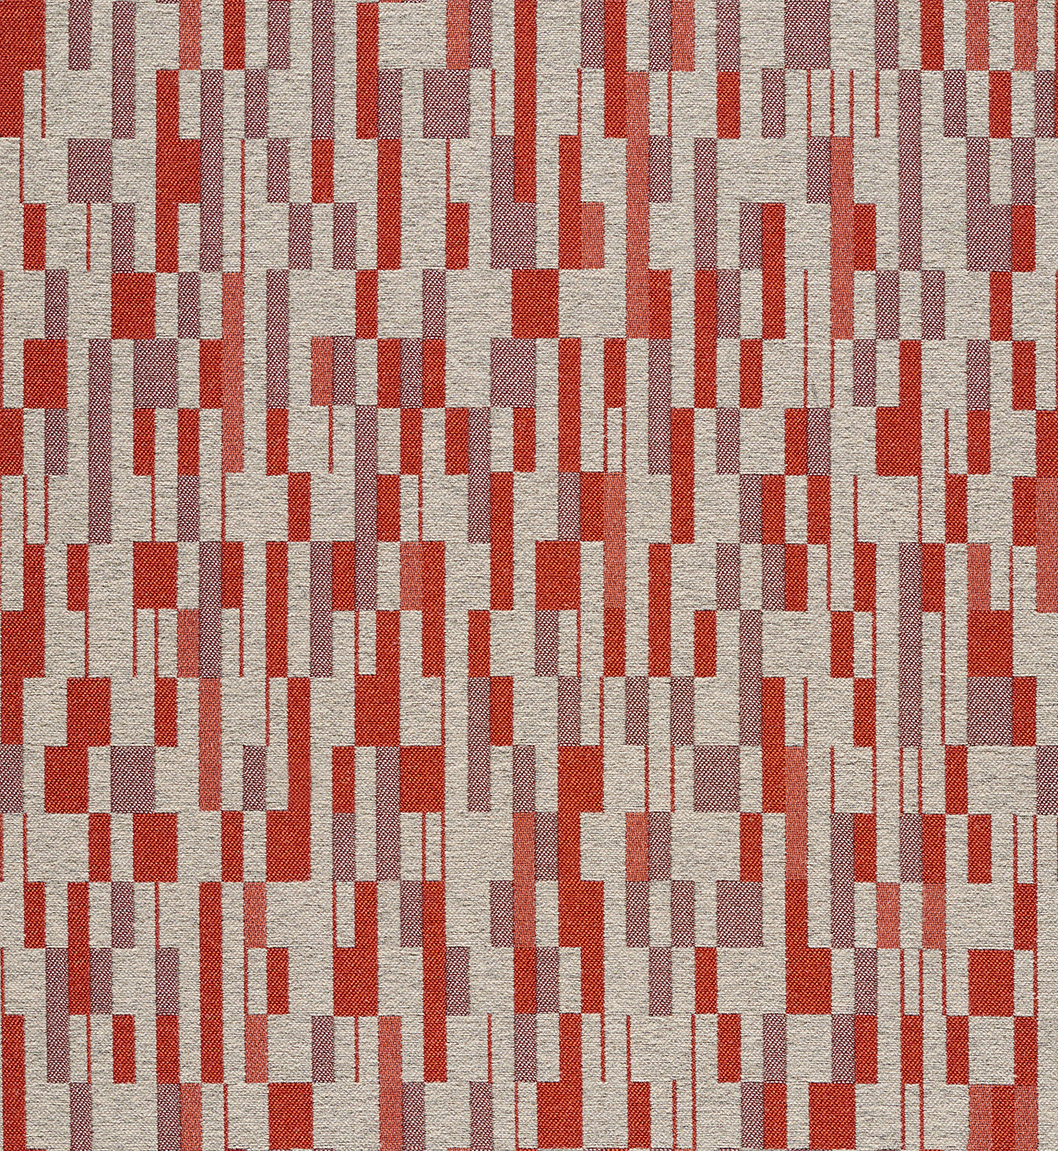 Modulus - Masonry - 4057 - 03 - Half Yard Tileable Swatches